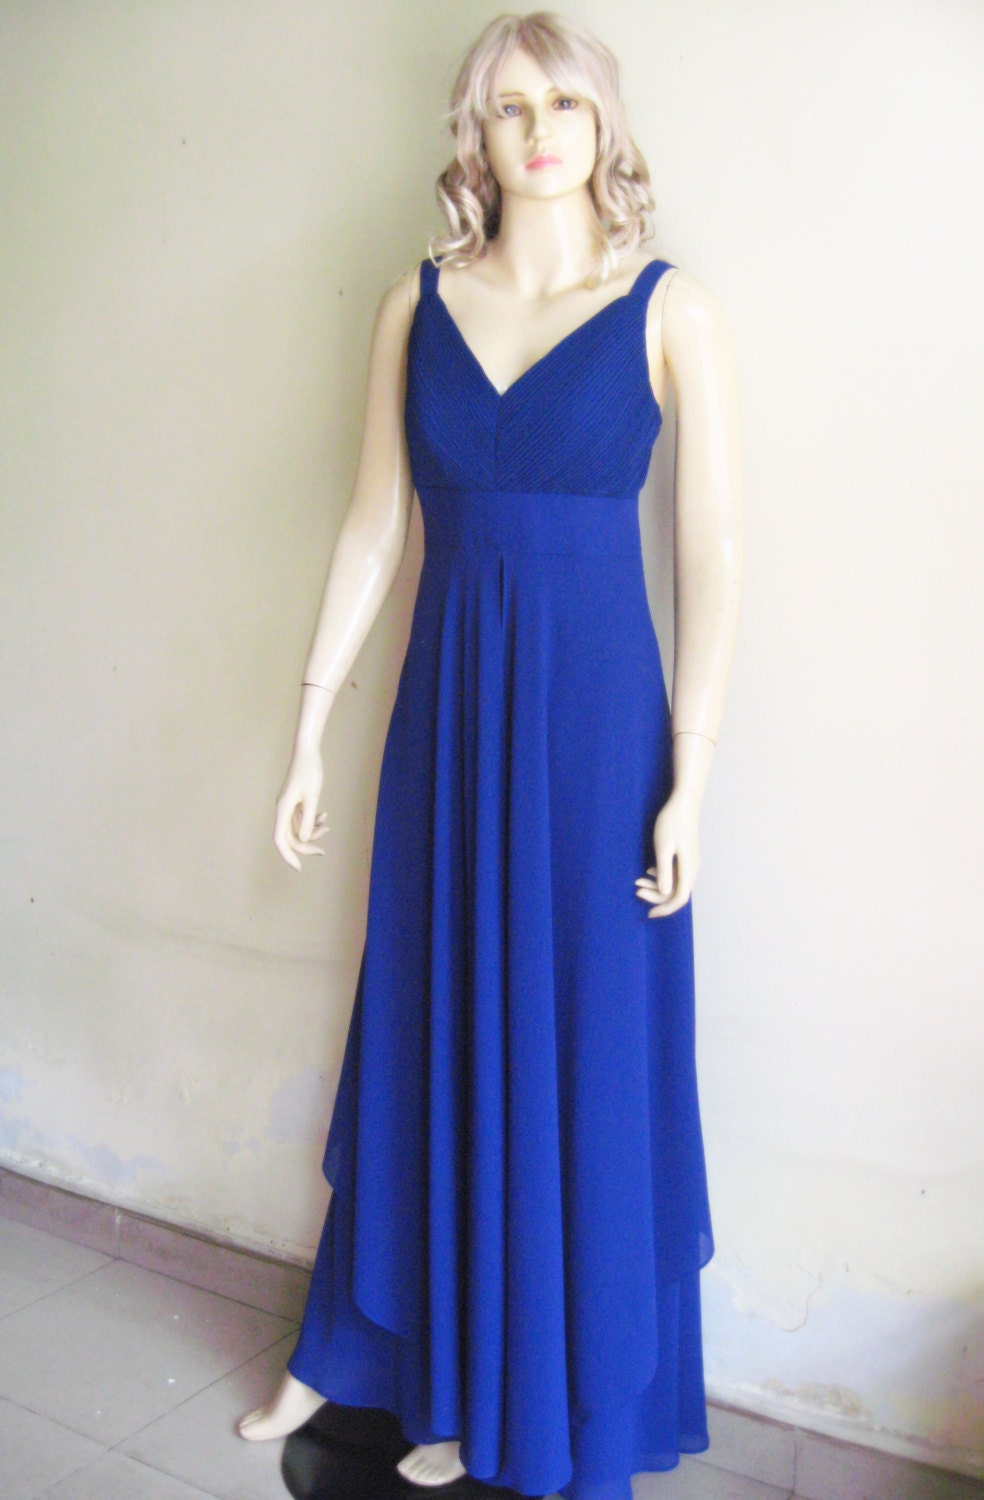 Blue Prom Dress.Long Bridesmaid Dress by lynamobley2012 on ... - photo #8